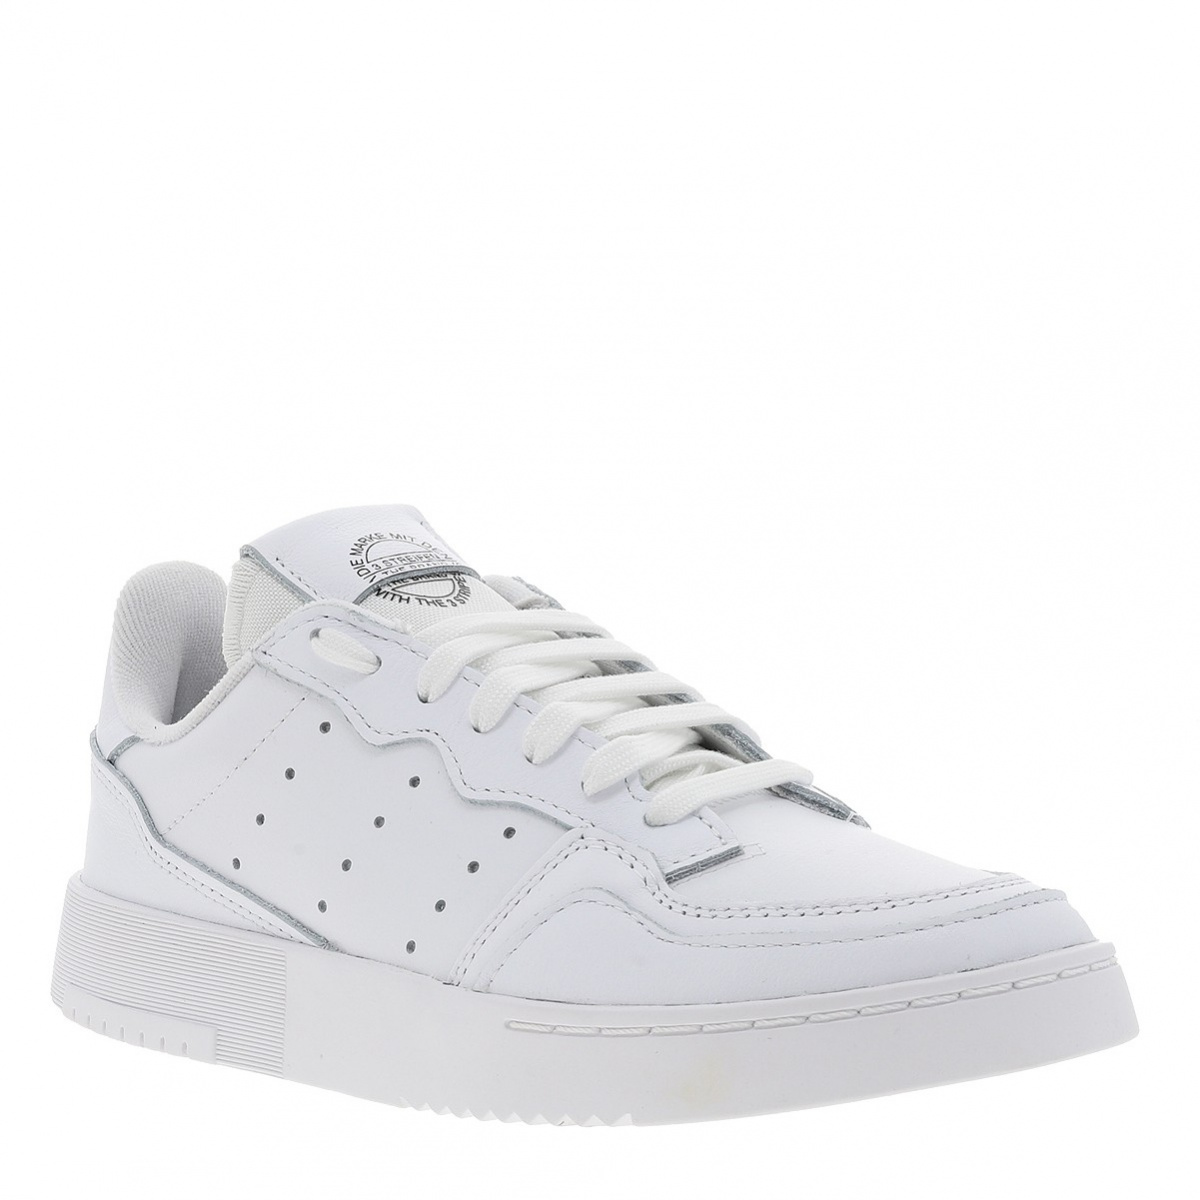 Adidas Originals V Jog Baskets Basses Femme Commandez Pas